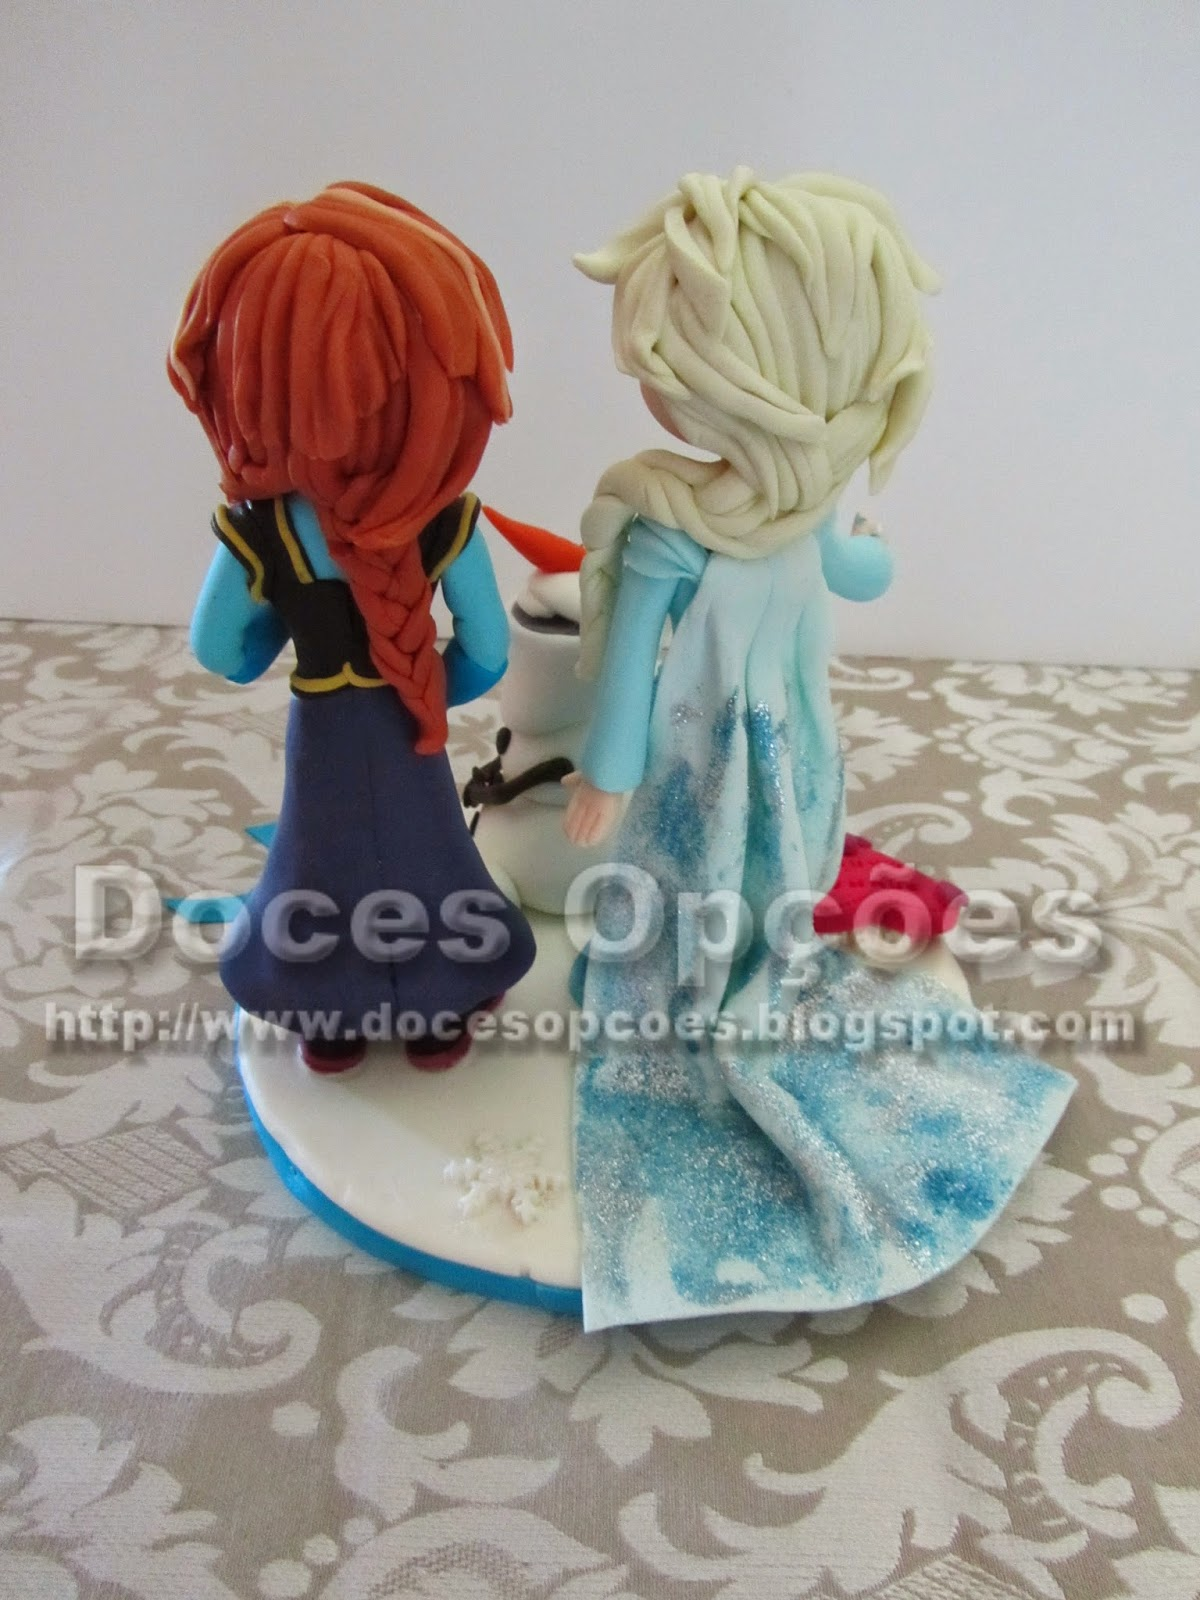 Figuras Disney's Frozen portugal